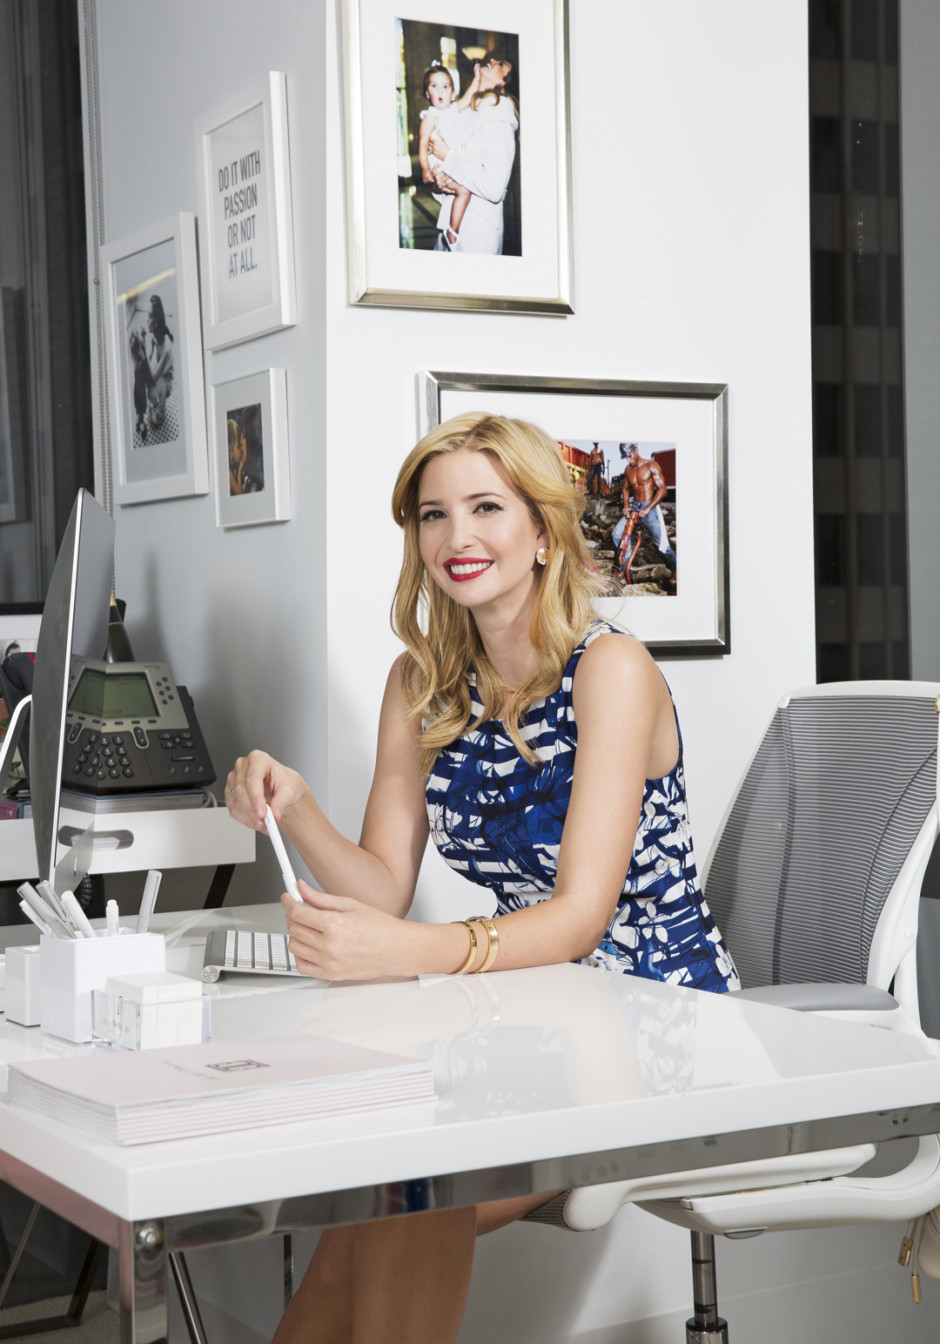 MCX040115Work_Profile001-940x1344 10 Strangest Ivanka Trump's Brand Facts